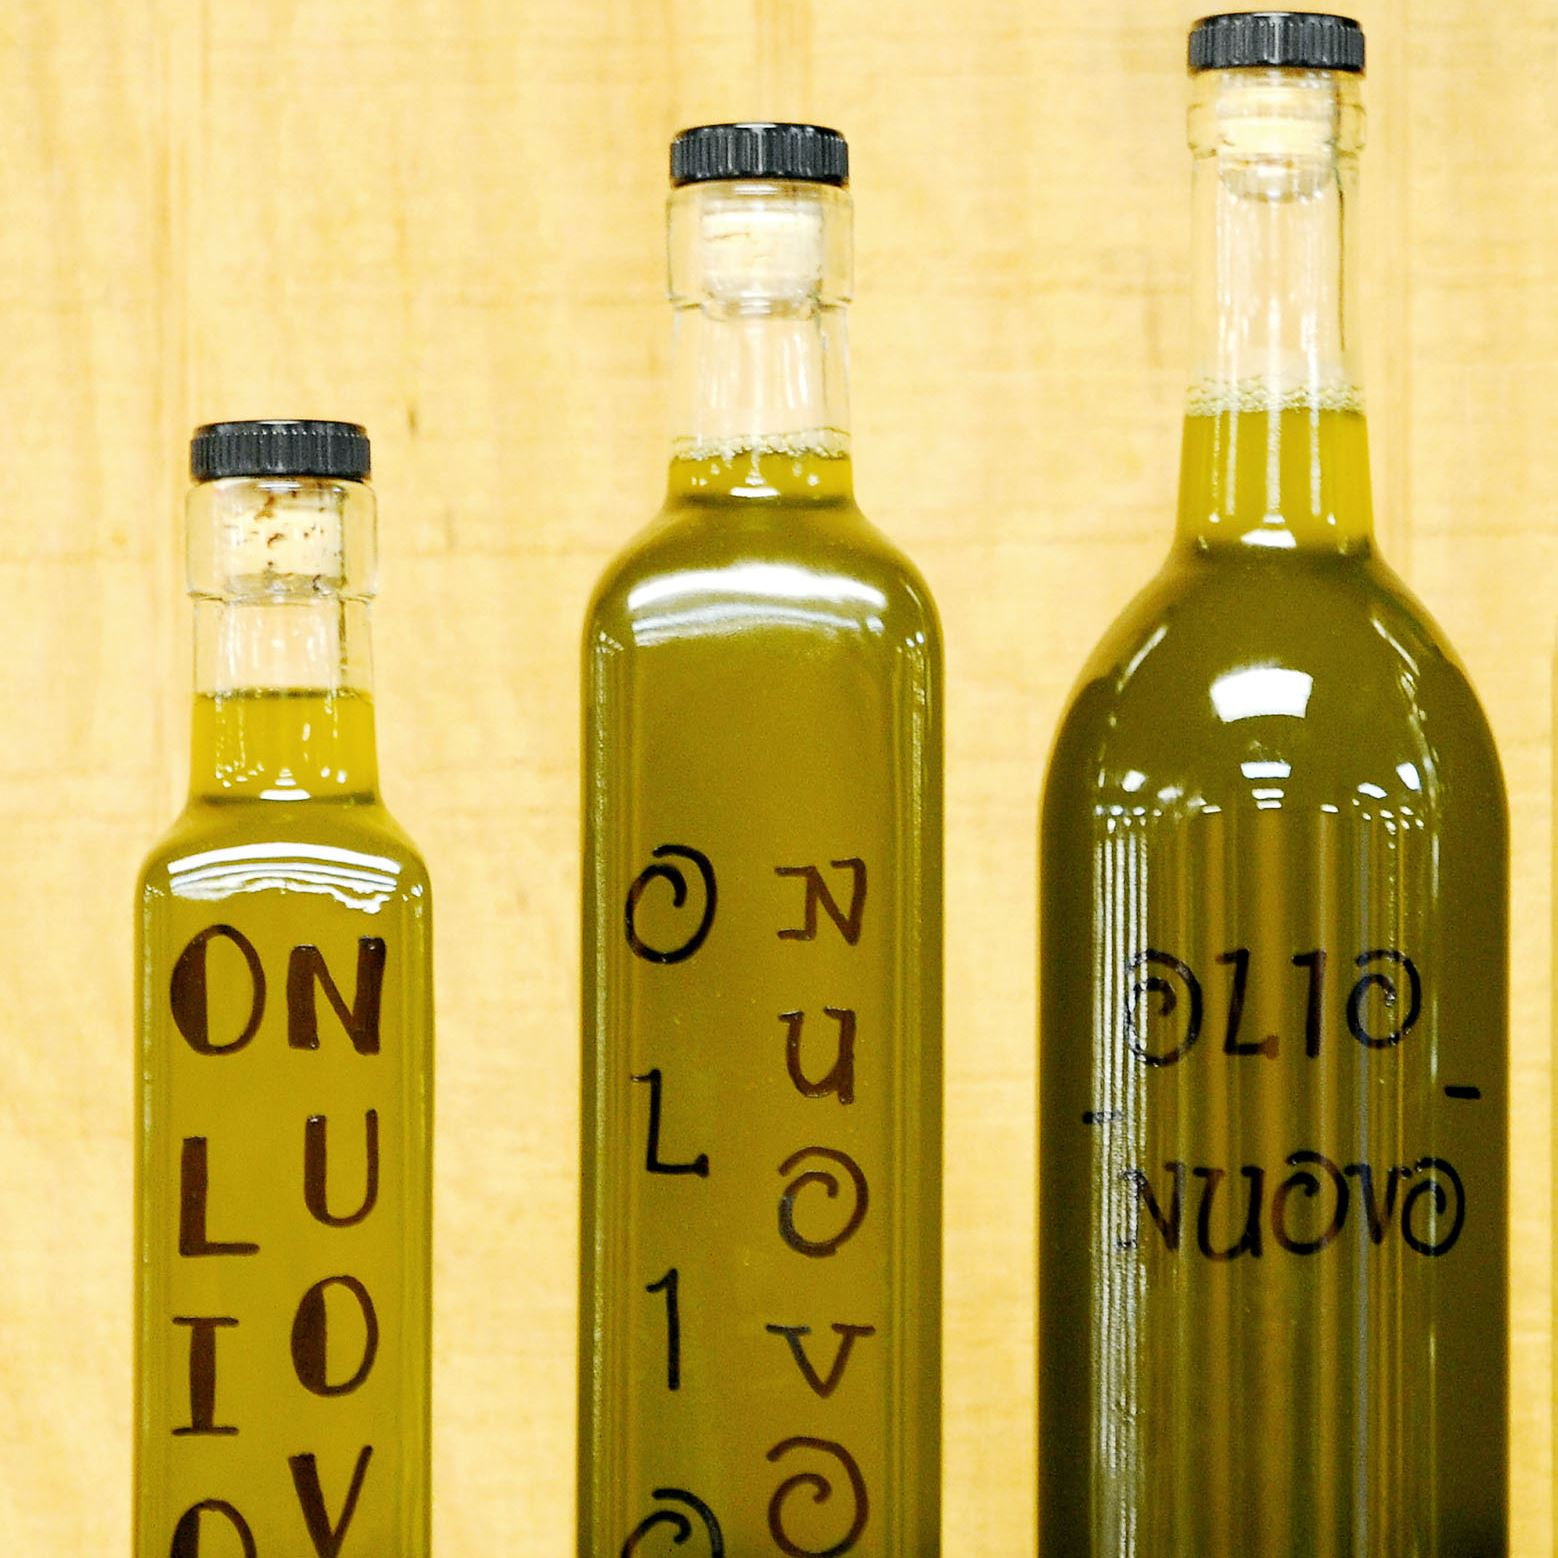 20150307ppDine0315SUNMAG2-1 A sample of new-crop olive oils that Dave Lagnese sells at his California Connection stand at the Farmers' Market Cooperative of East Liberty.